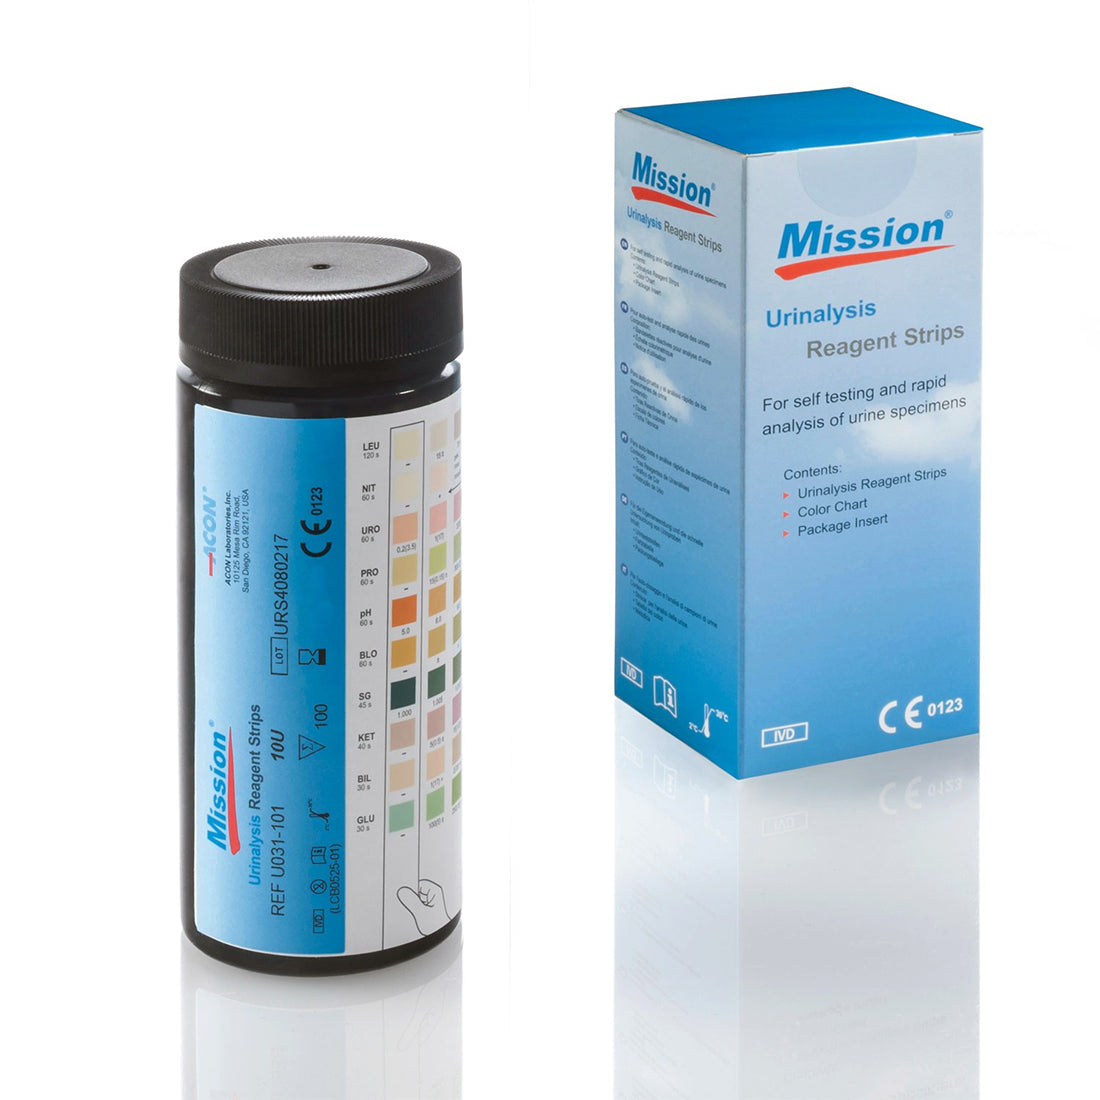 Mission Urinalysis Reagent Strips 100ct